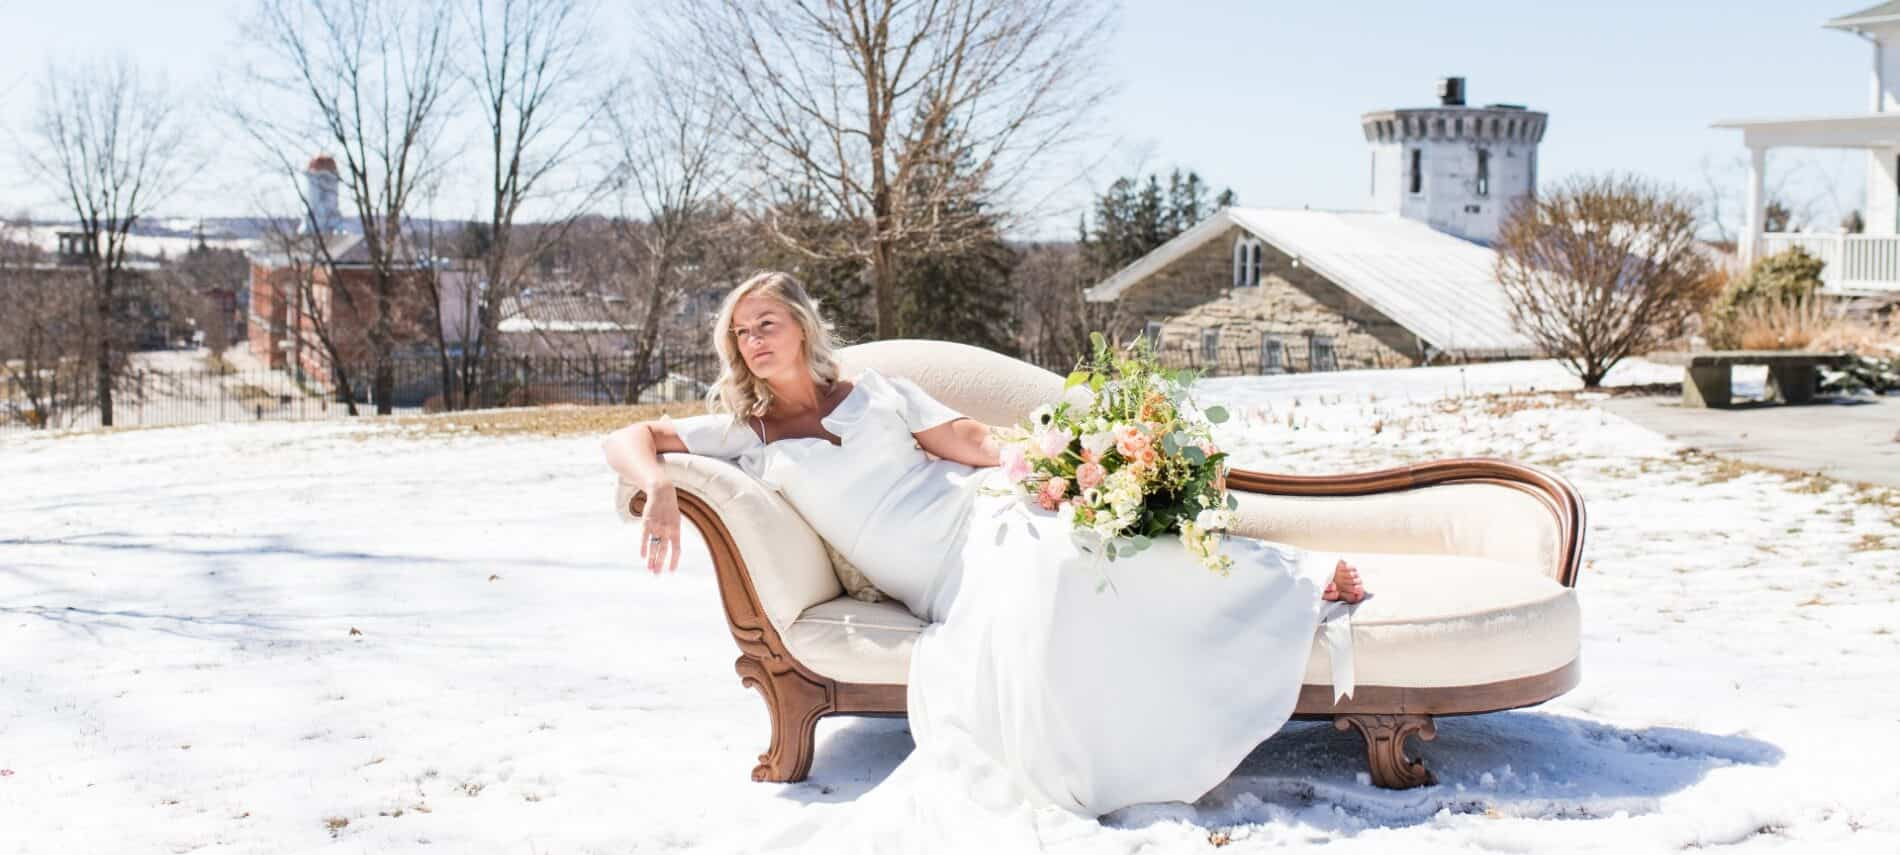 Blonde bride in white gown reclines on a cream settee in a snowy outdoor scene.